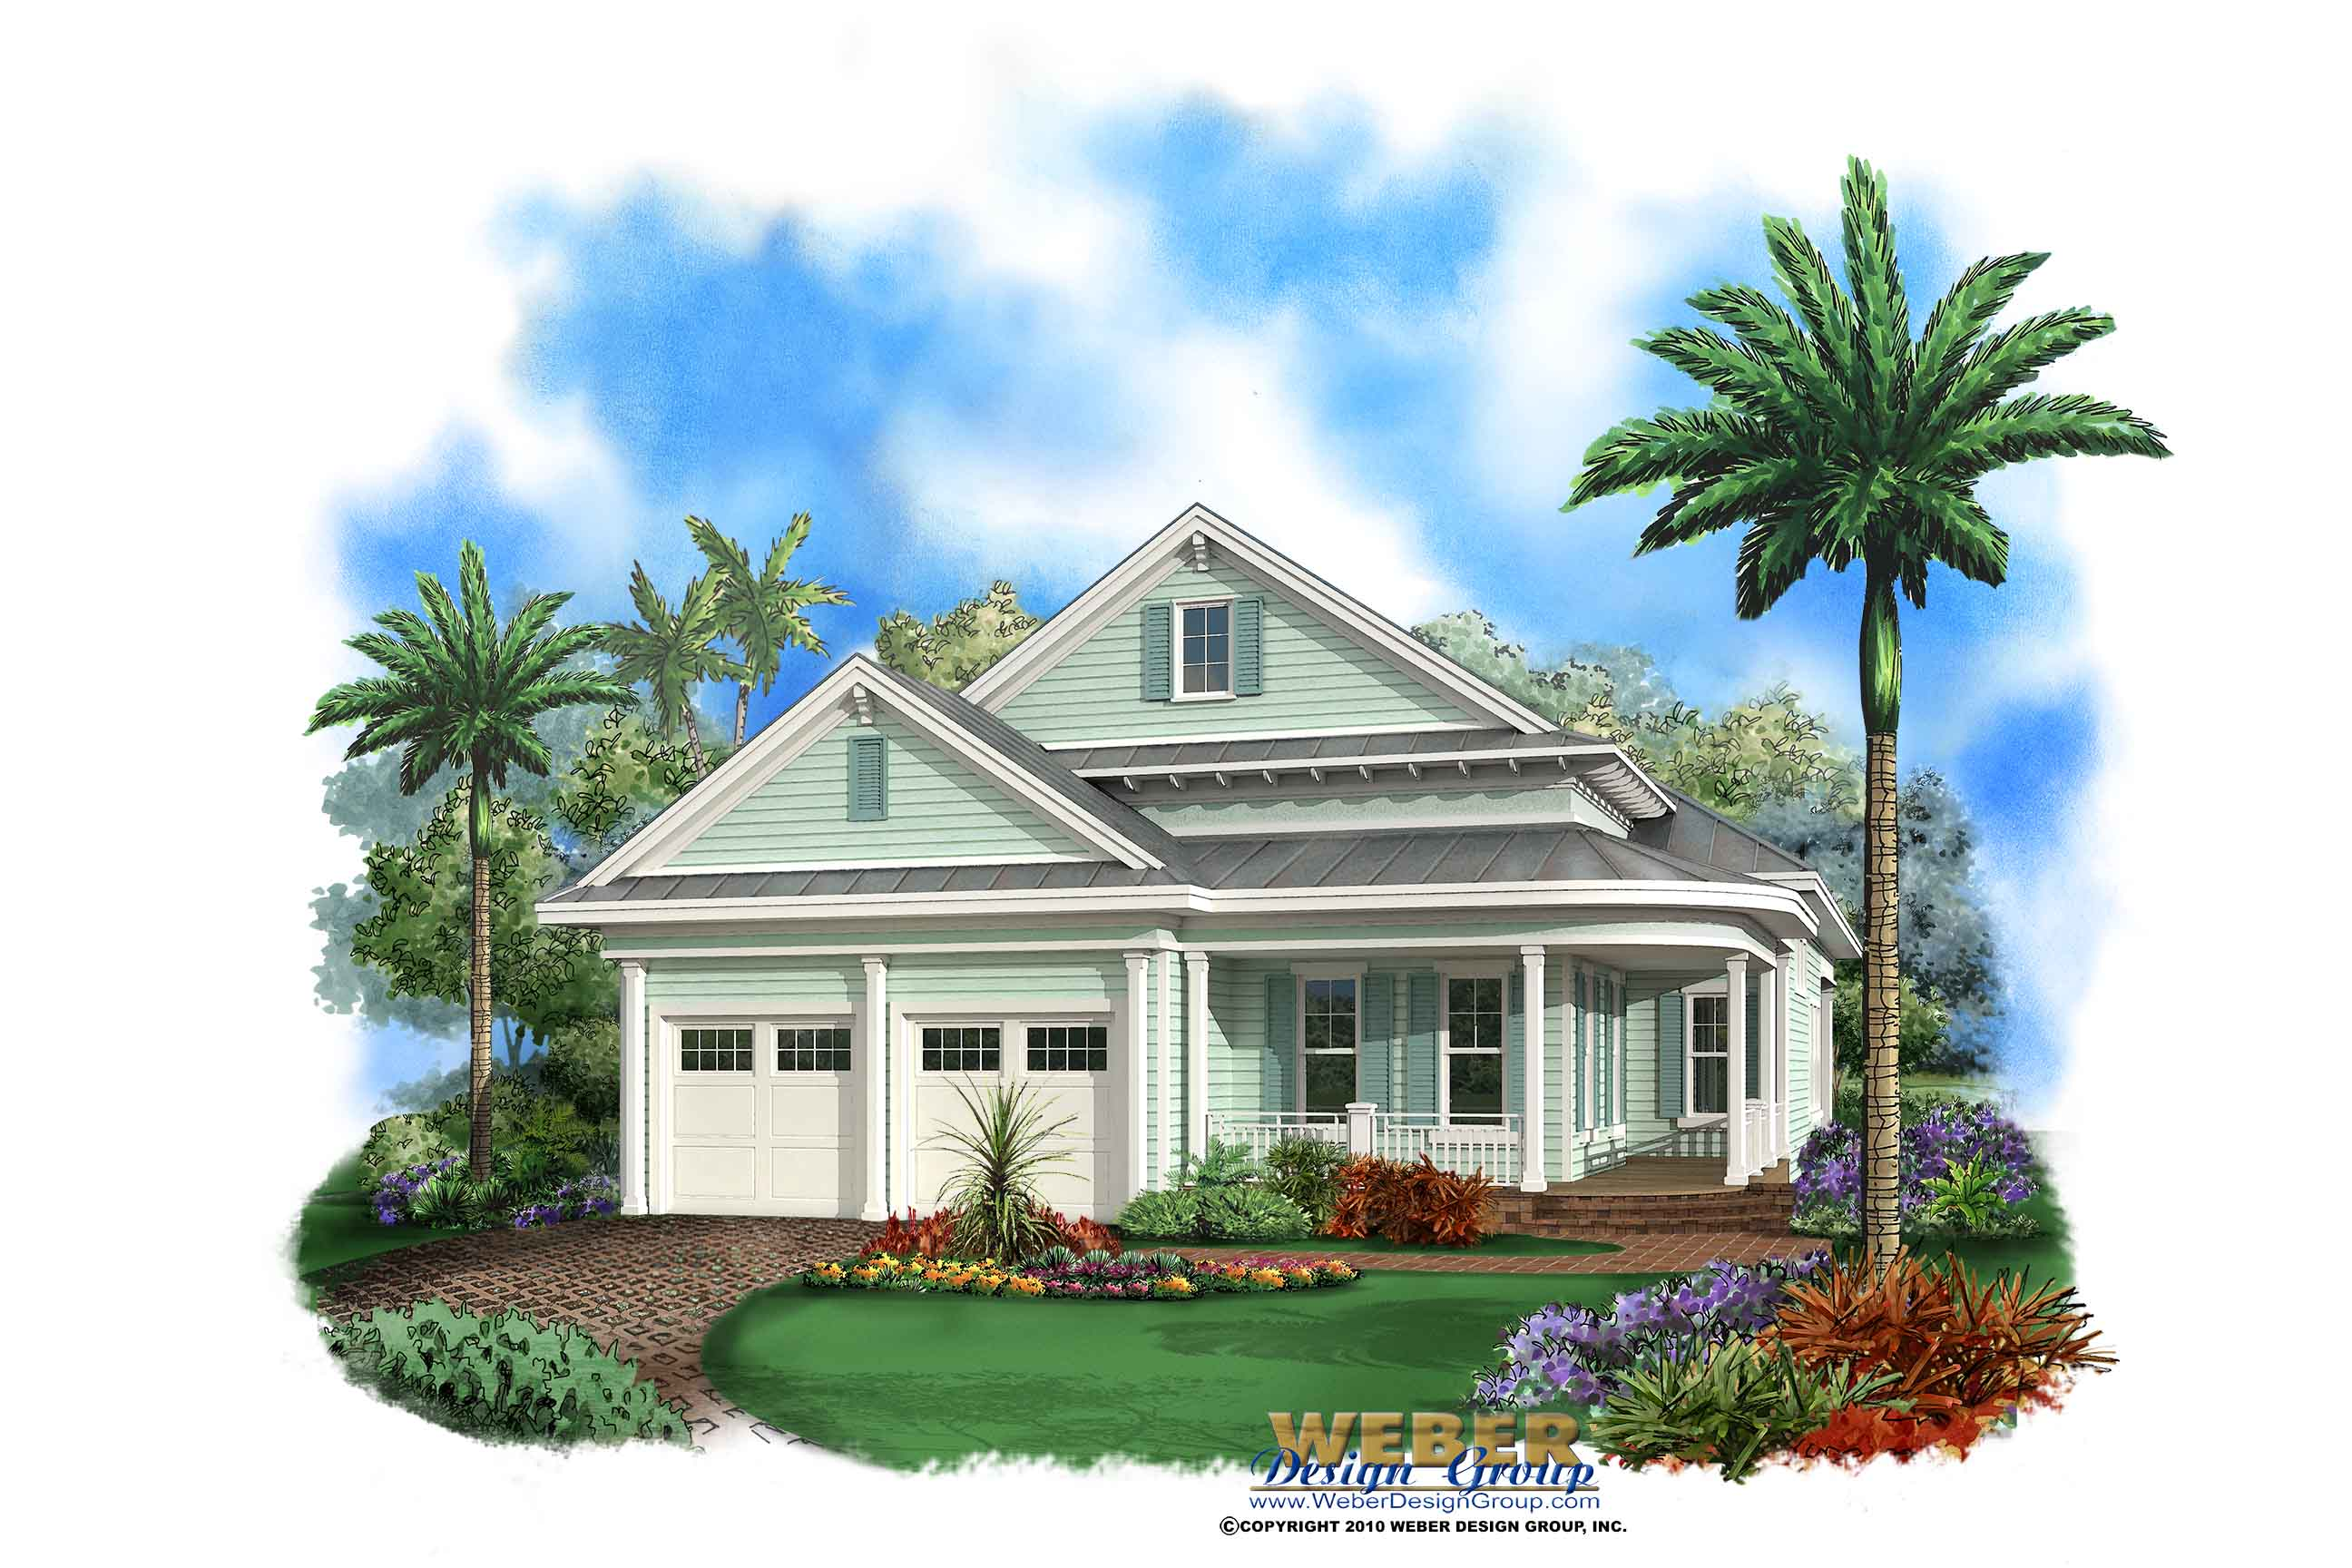 Magnificent Florida Waterfront House Plans 2592 x 1728 · 355 kB · jpeg